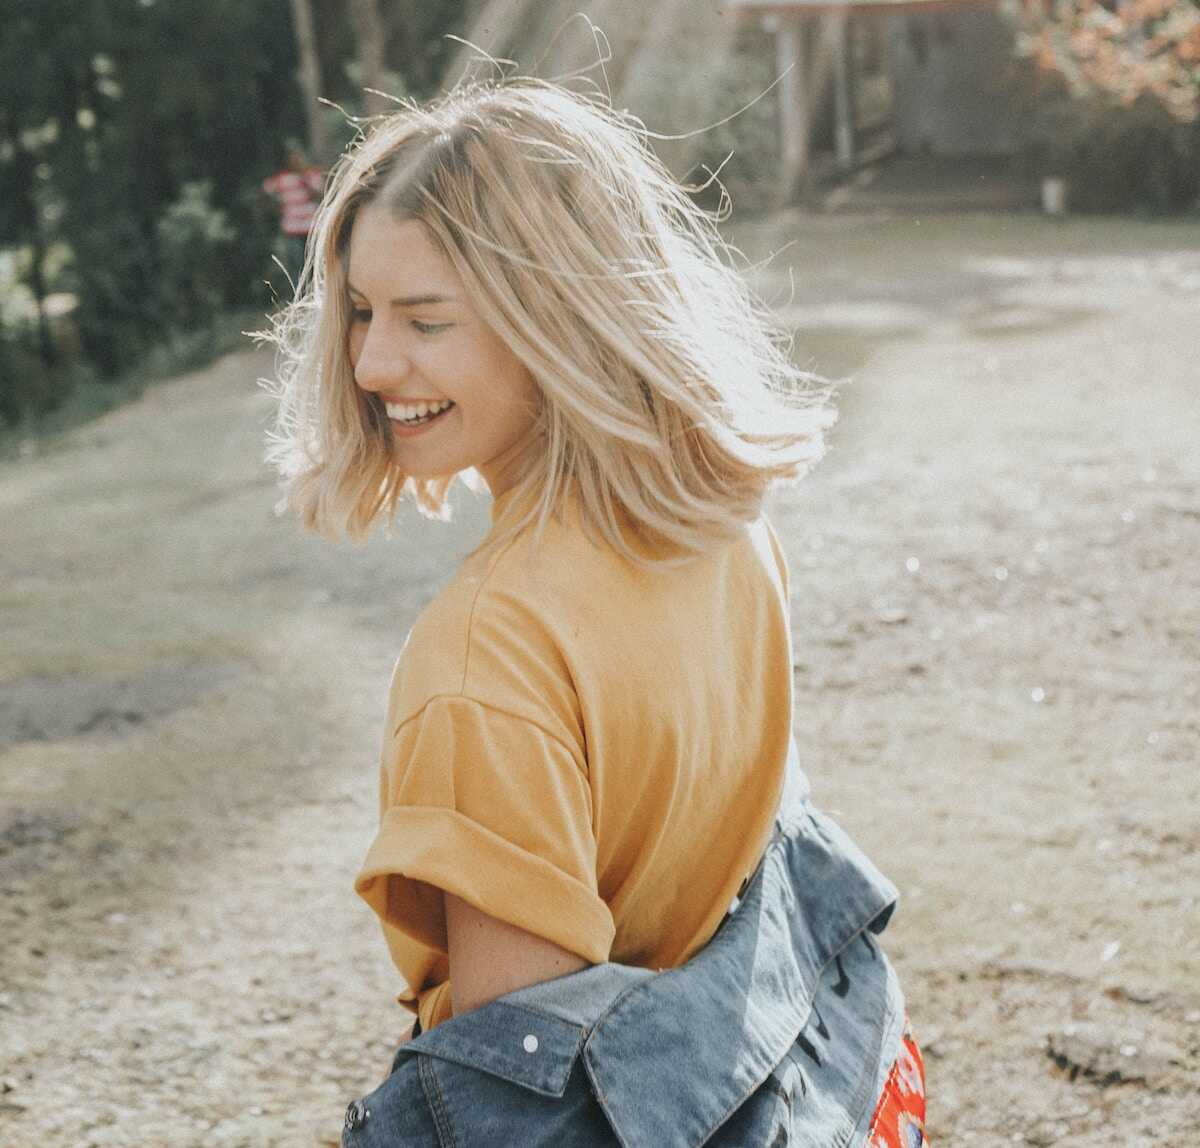 Blonde young woman smiling on a walk